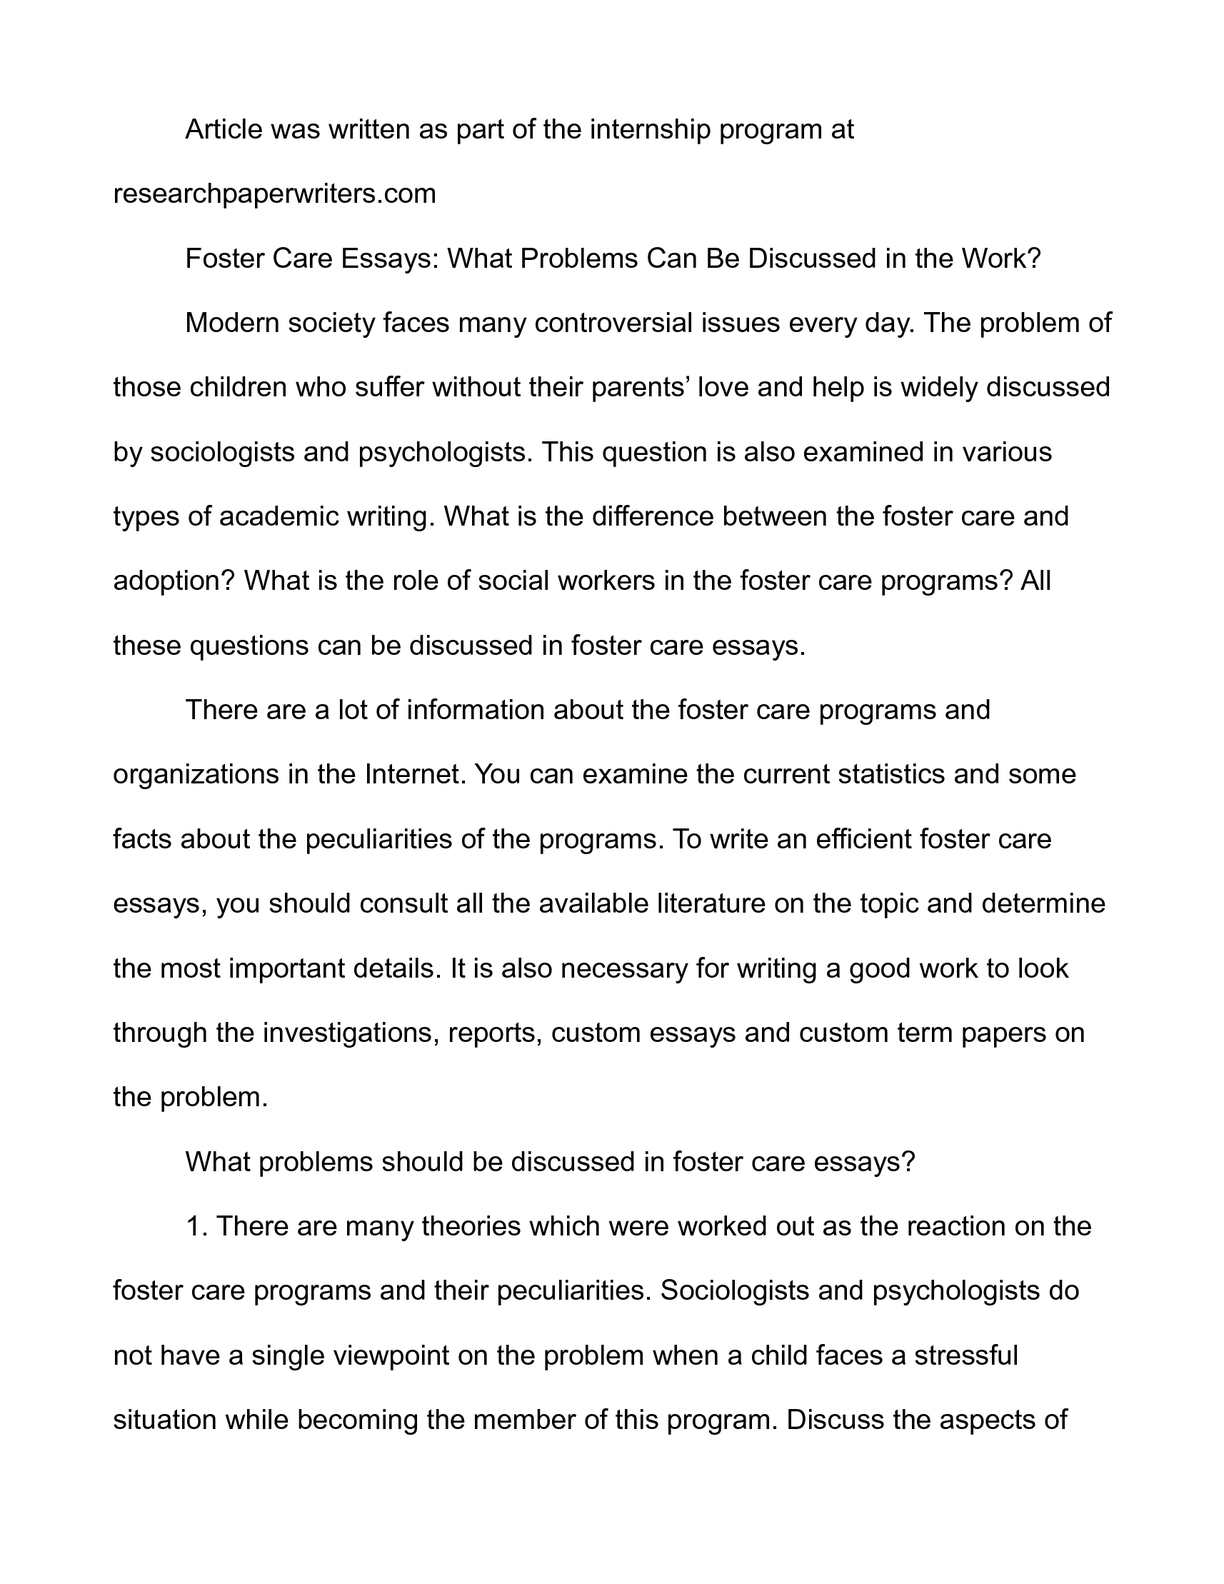 foster care essay conclusion